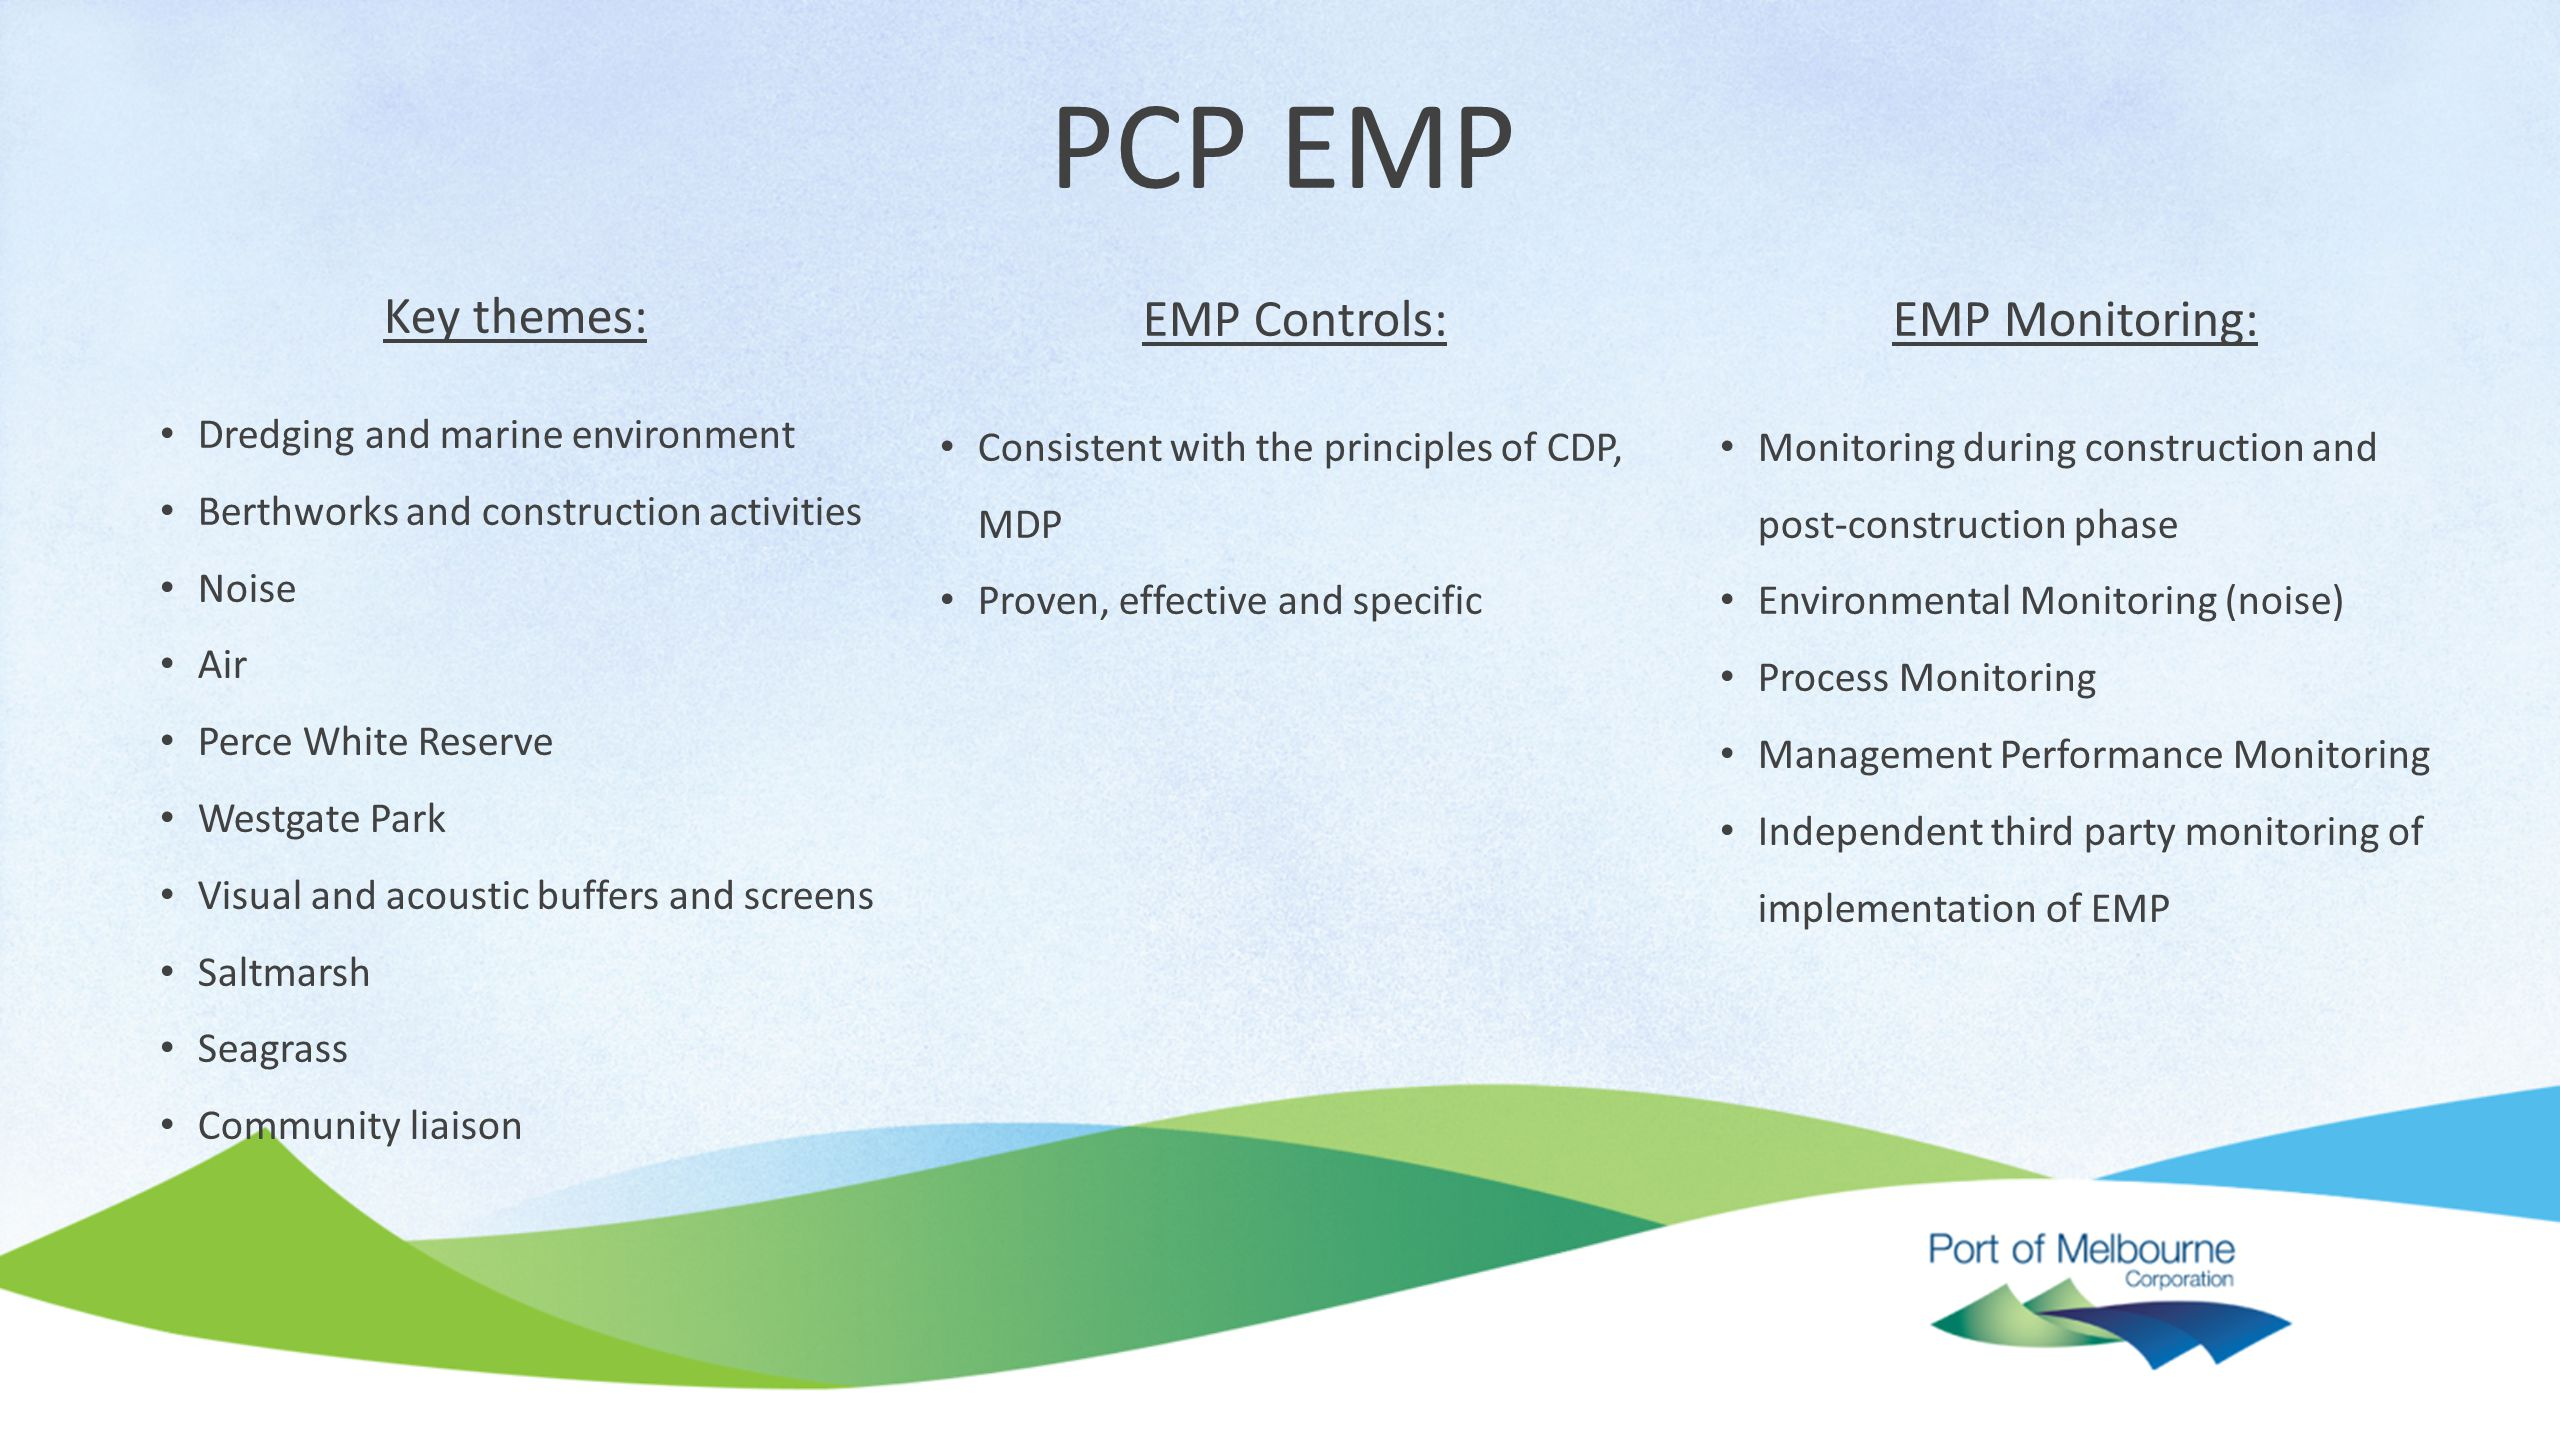 PCP EMP Key themes: Dredging and marine environment Berthworks and construction activities Noise Air Perce White Reserve Westgate Park Visual and acoustic buffers and screens Saltmarsh Seagrass Community liaison EMP Controls: Consistent with the principles of CDP, MDP Proven, effective and specific EMP Monitoring: Monitoring during construction and post-construction phase Environmental Monitoring (noise) Process Monitoring Management Performance Monitoring Independent third party monitoring of implementation of EMP